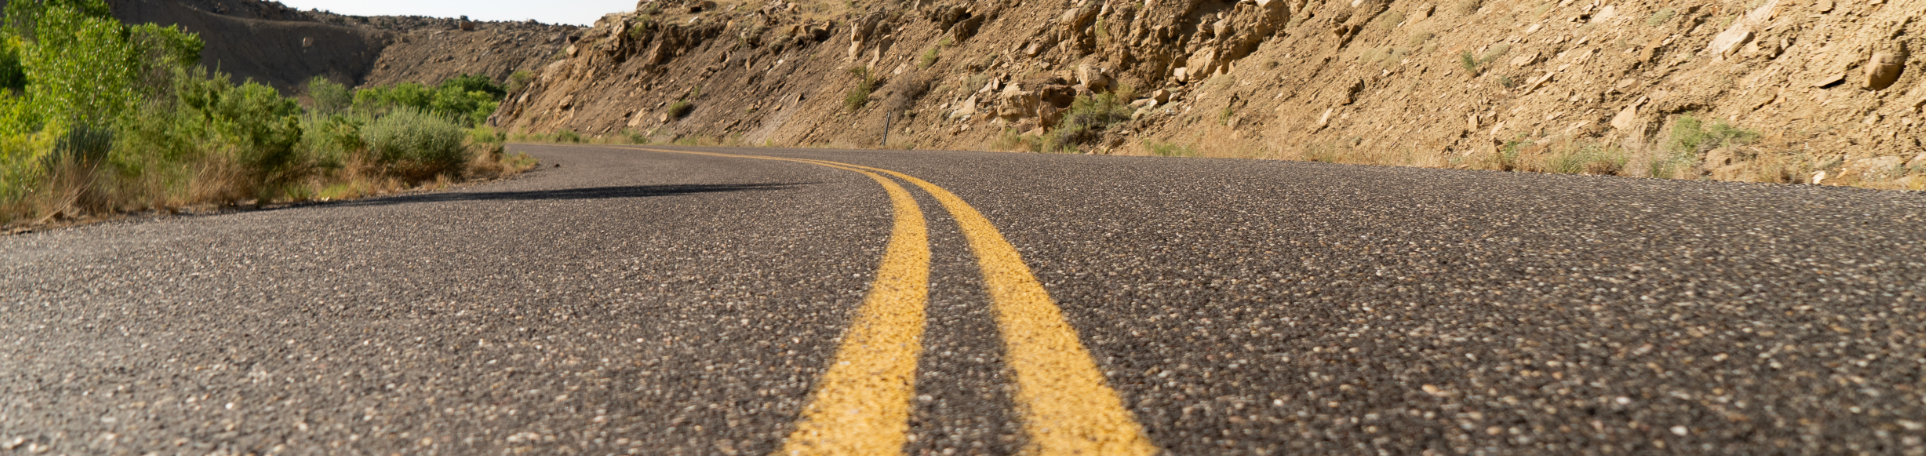 Paved Road Use Background